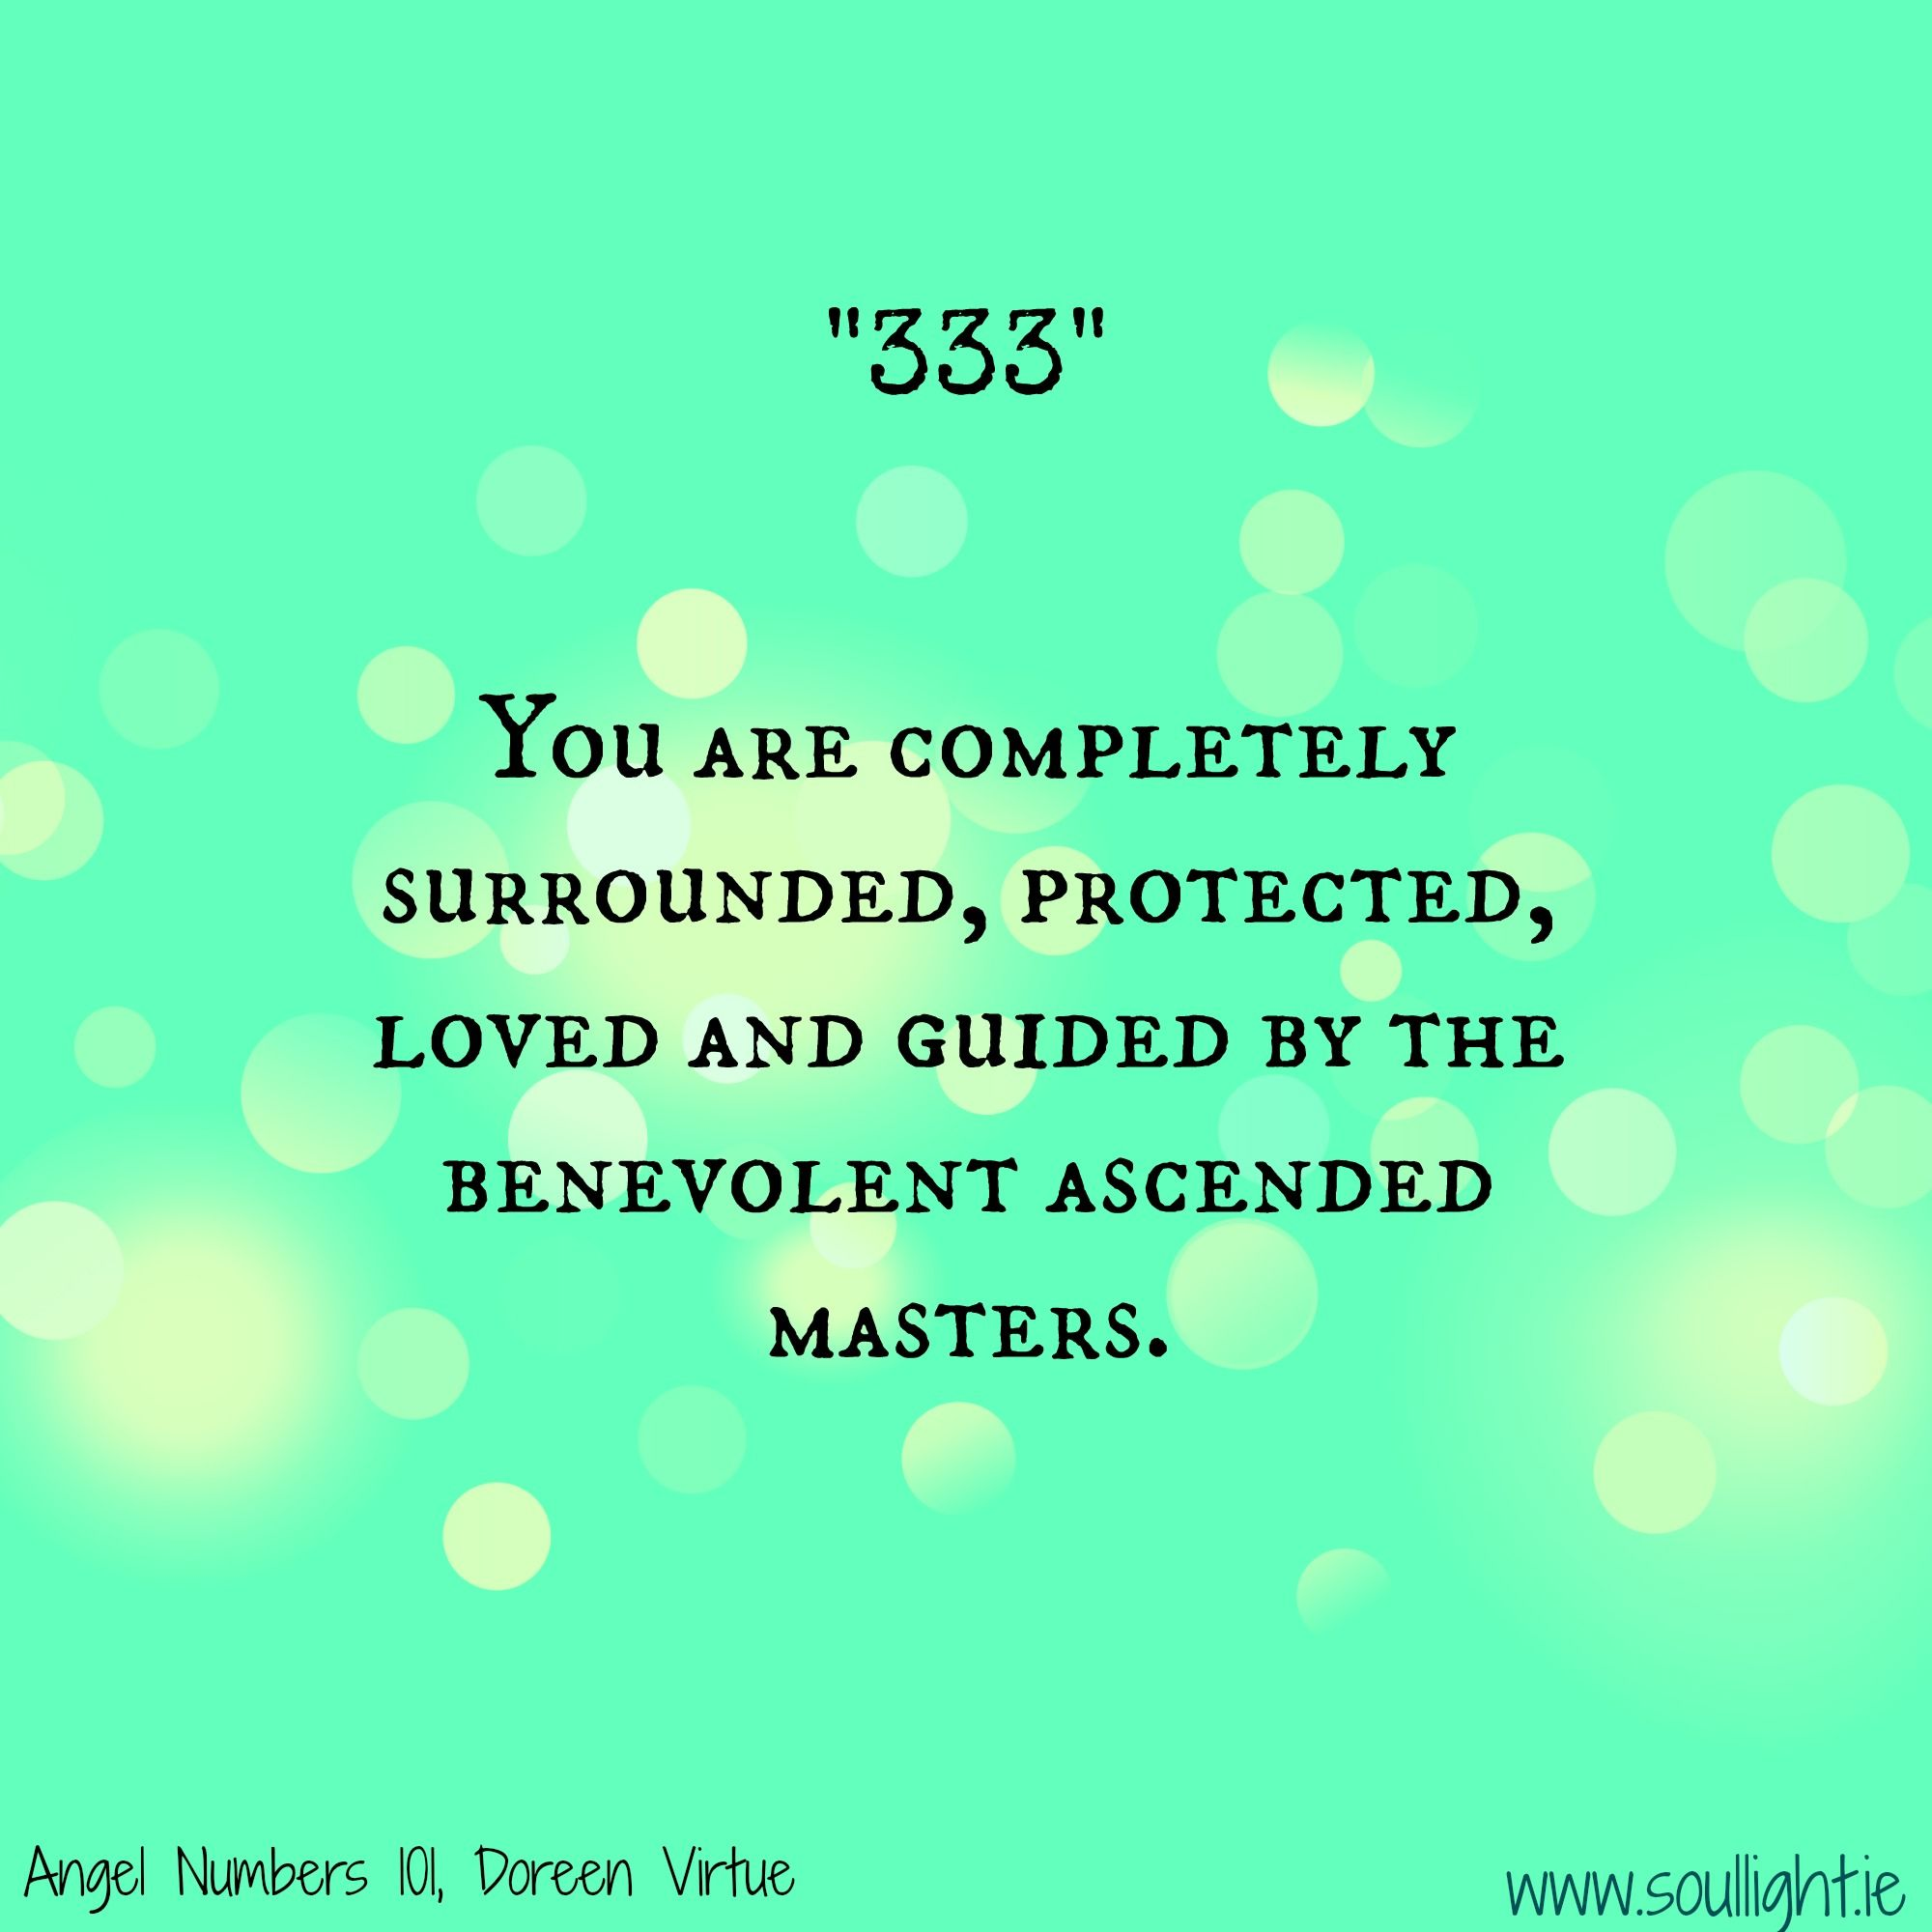 5555 meaning doreen virtue - Taken From Angel Numbers 101 By Doreen Virtue Available To Buy From